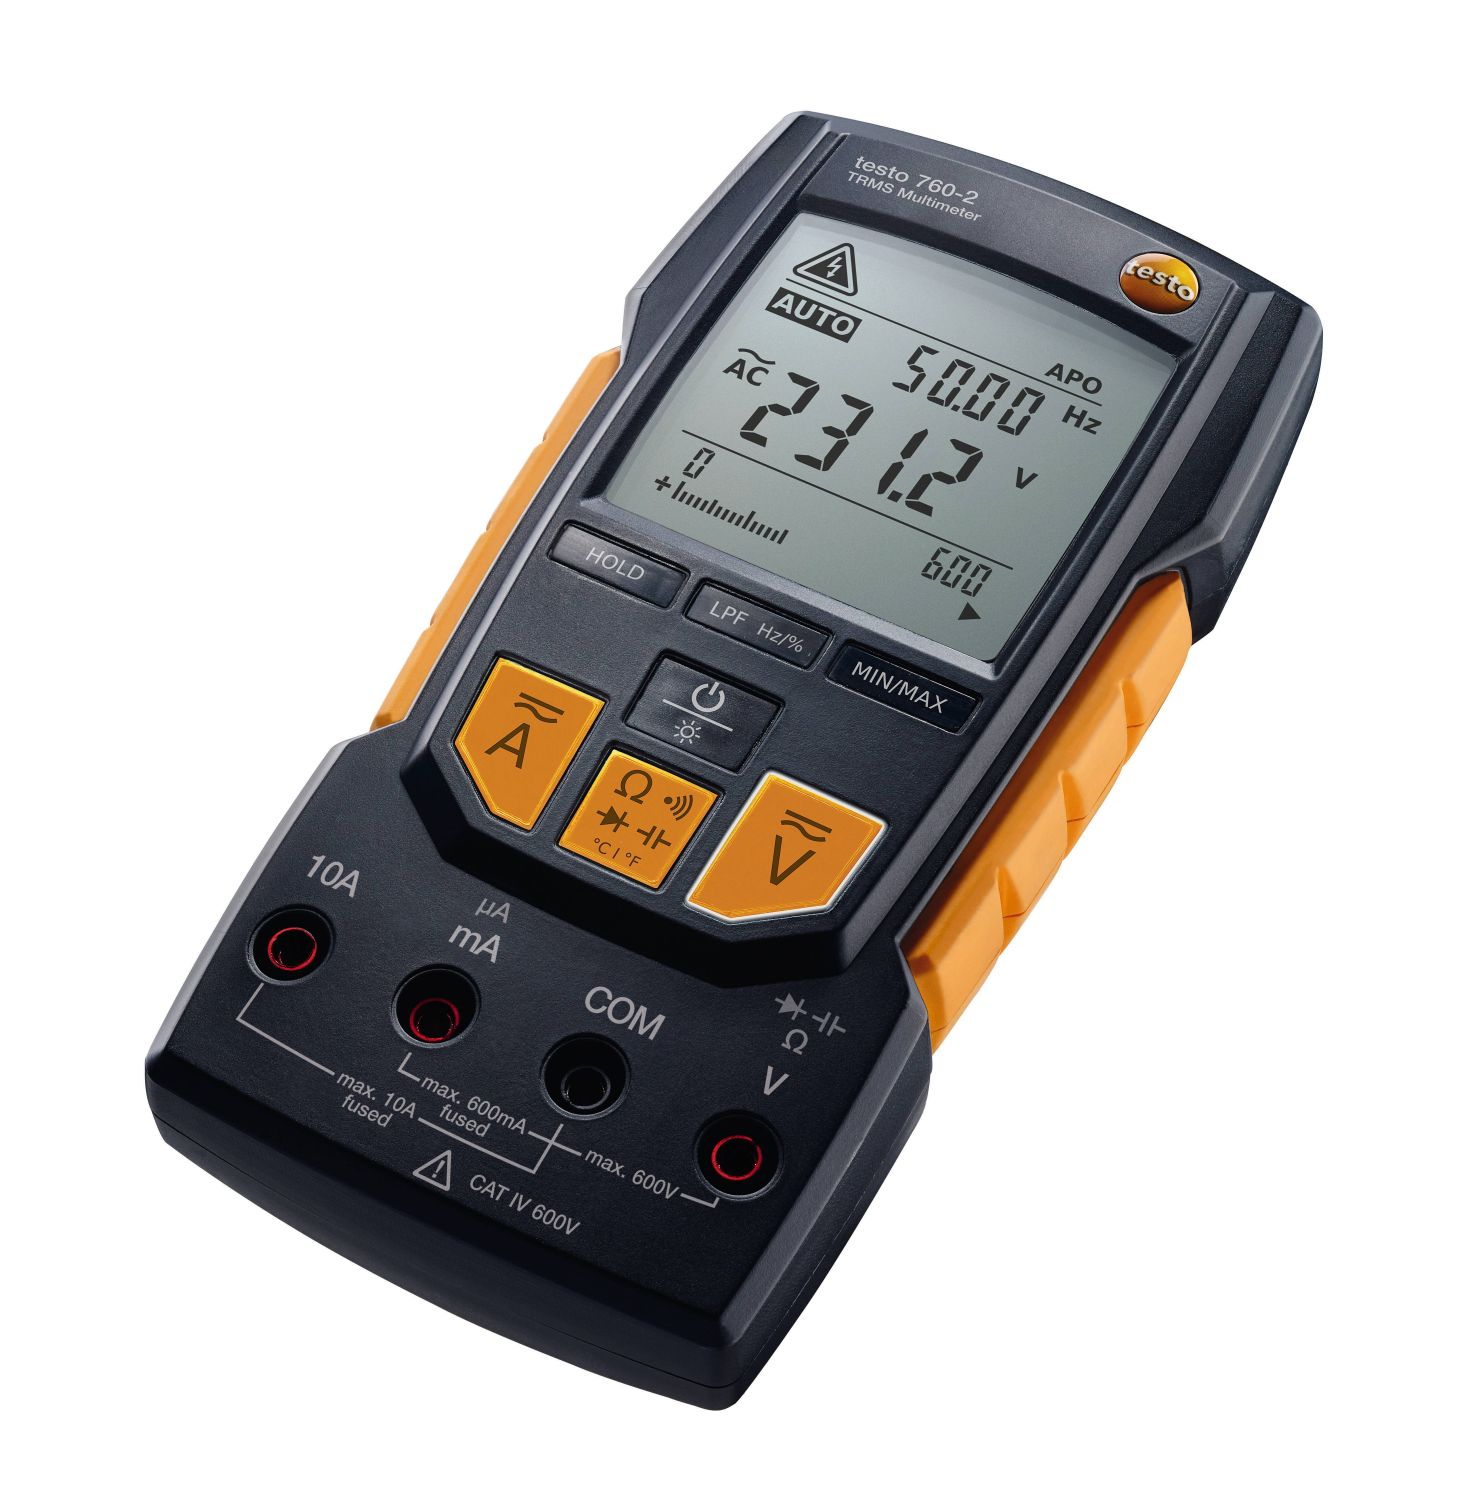 Digital multimeter testo 760-2